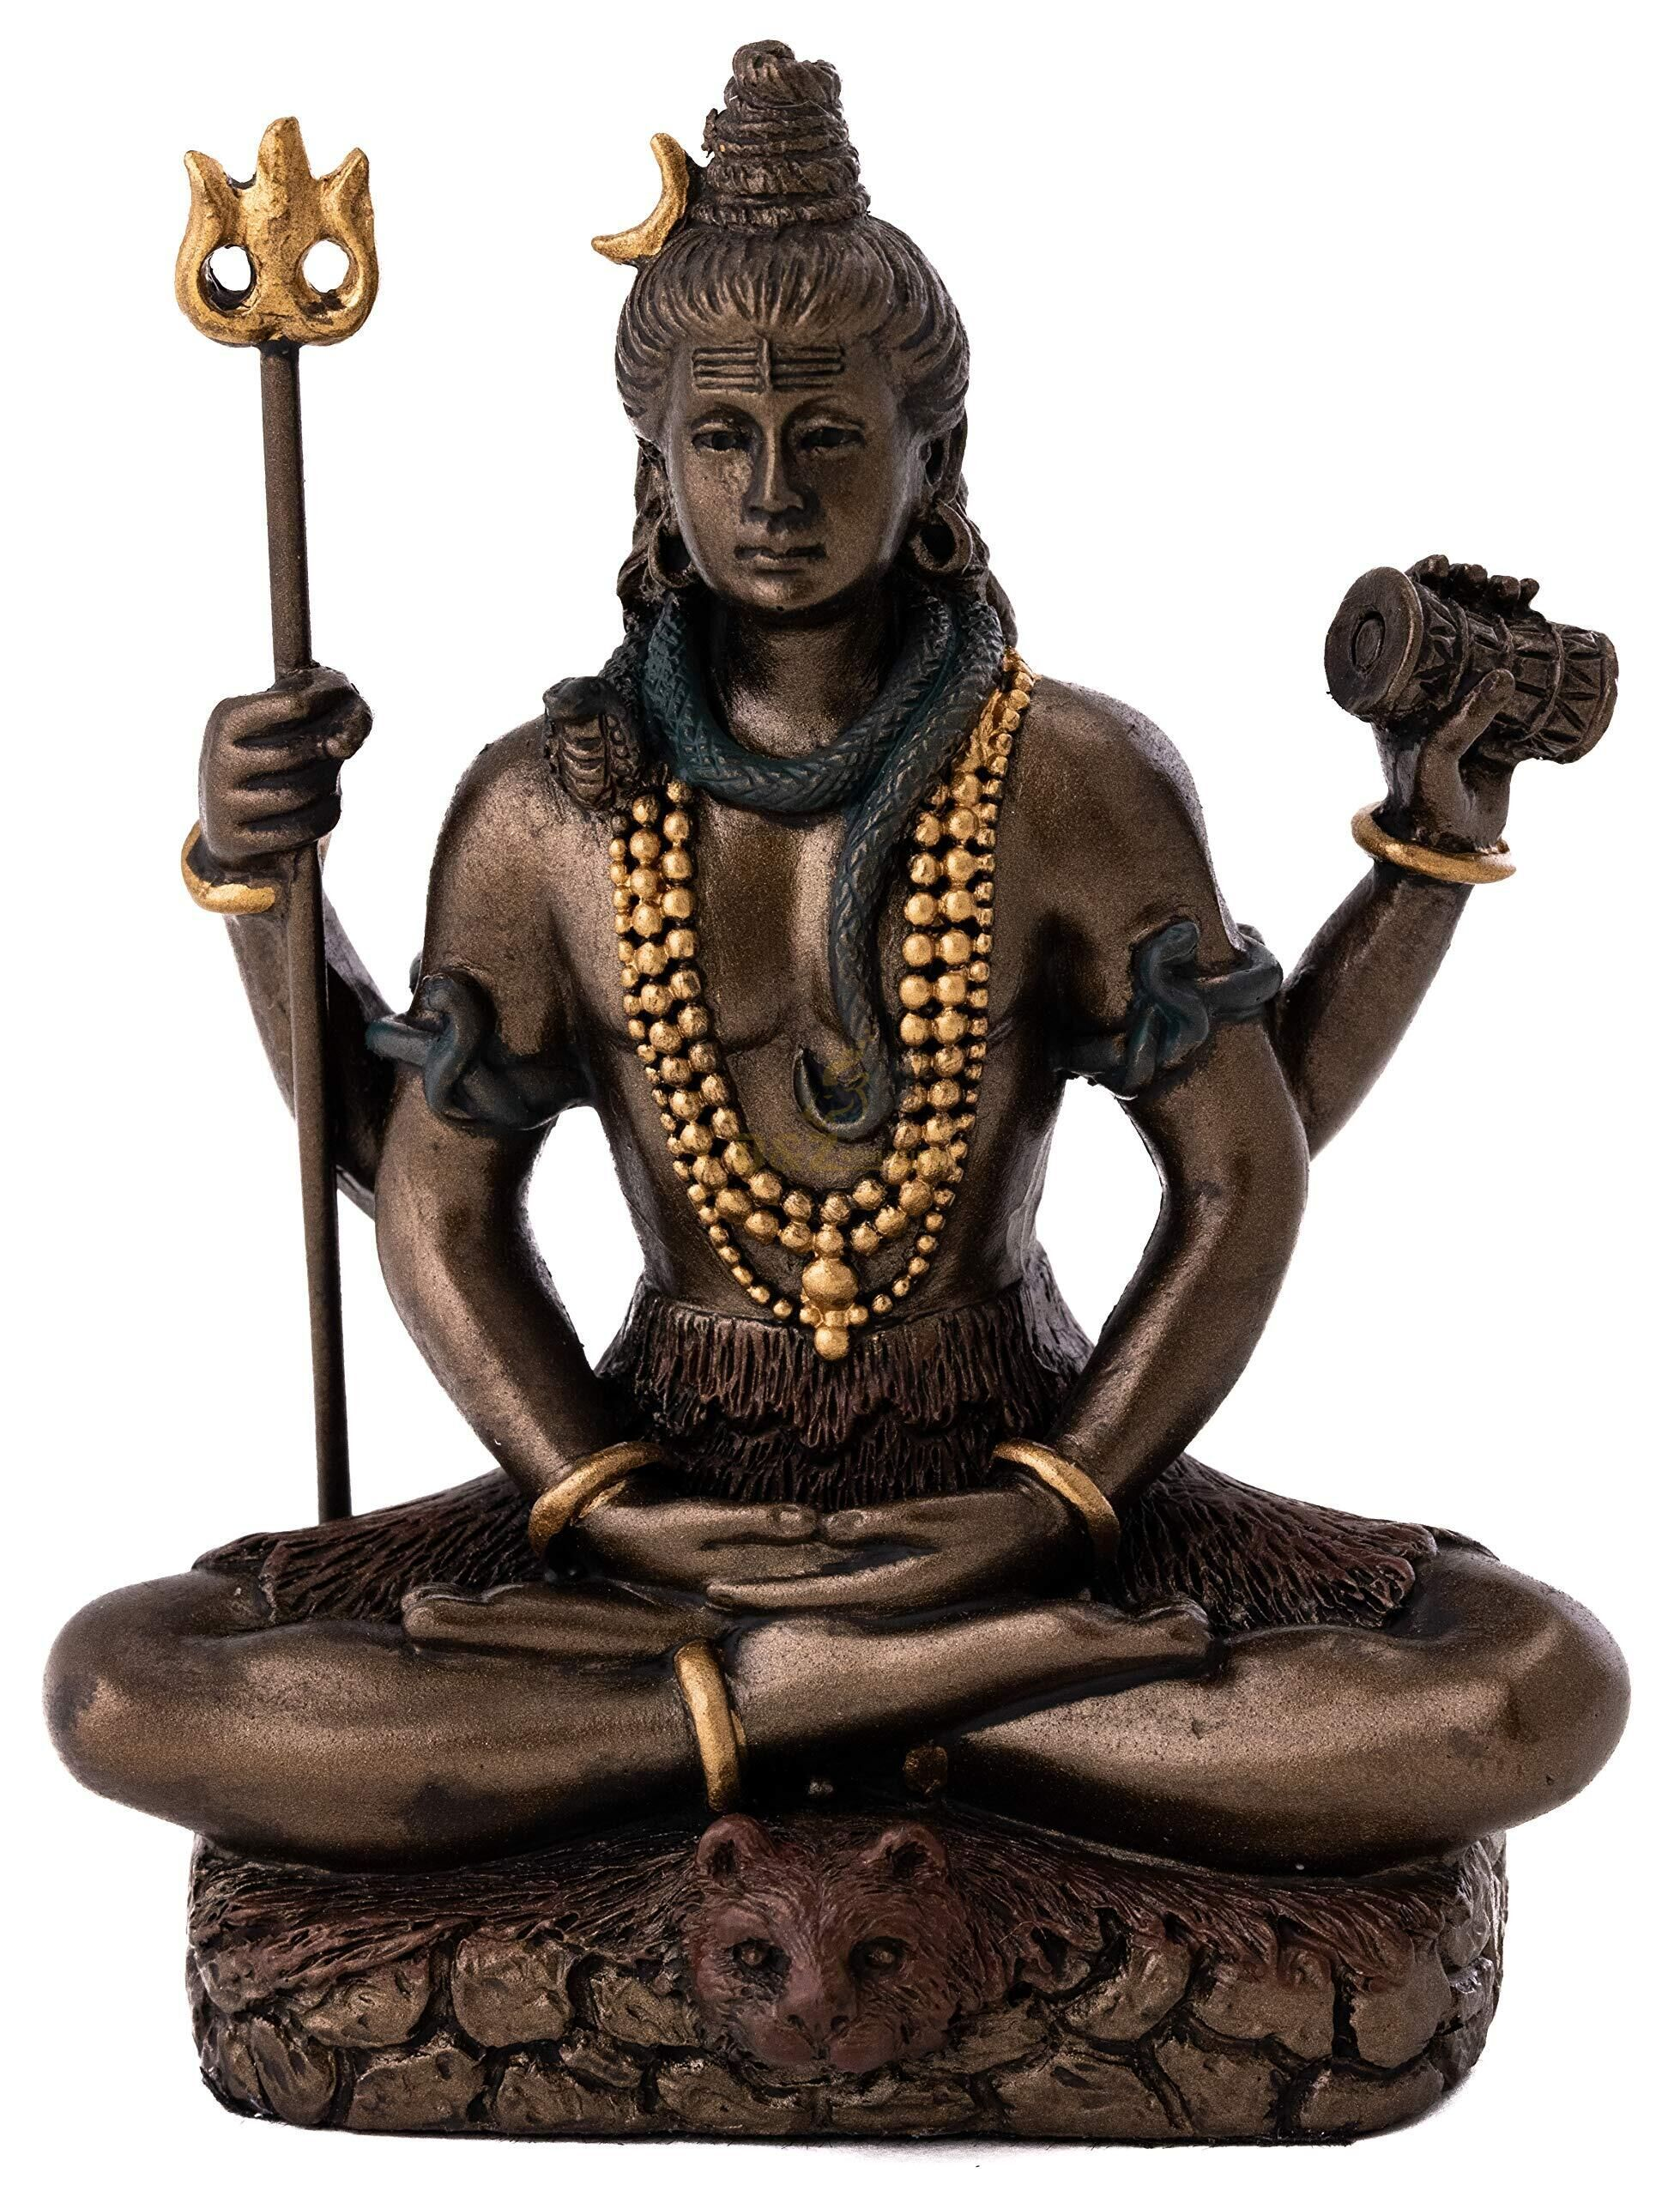 Antique life-size handmade god shiva statue bronze sculpture with outdoor decoration